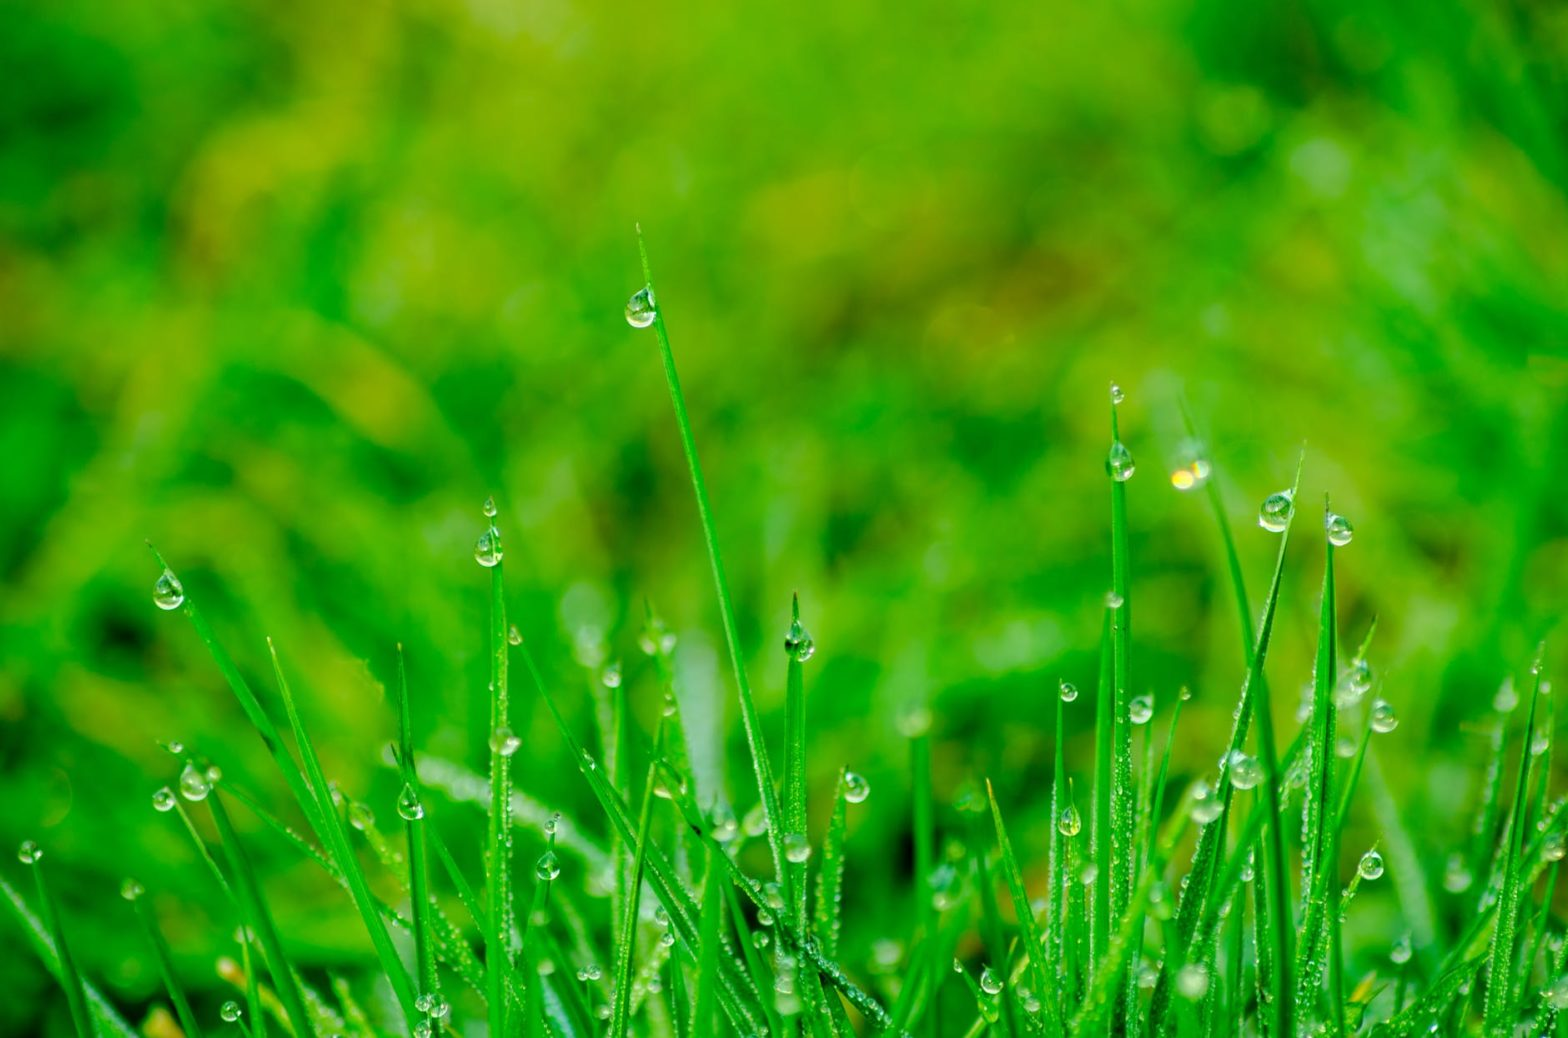 Watering Your Lawn During the Summer